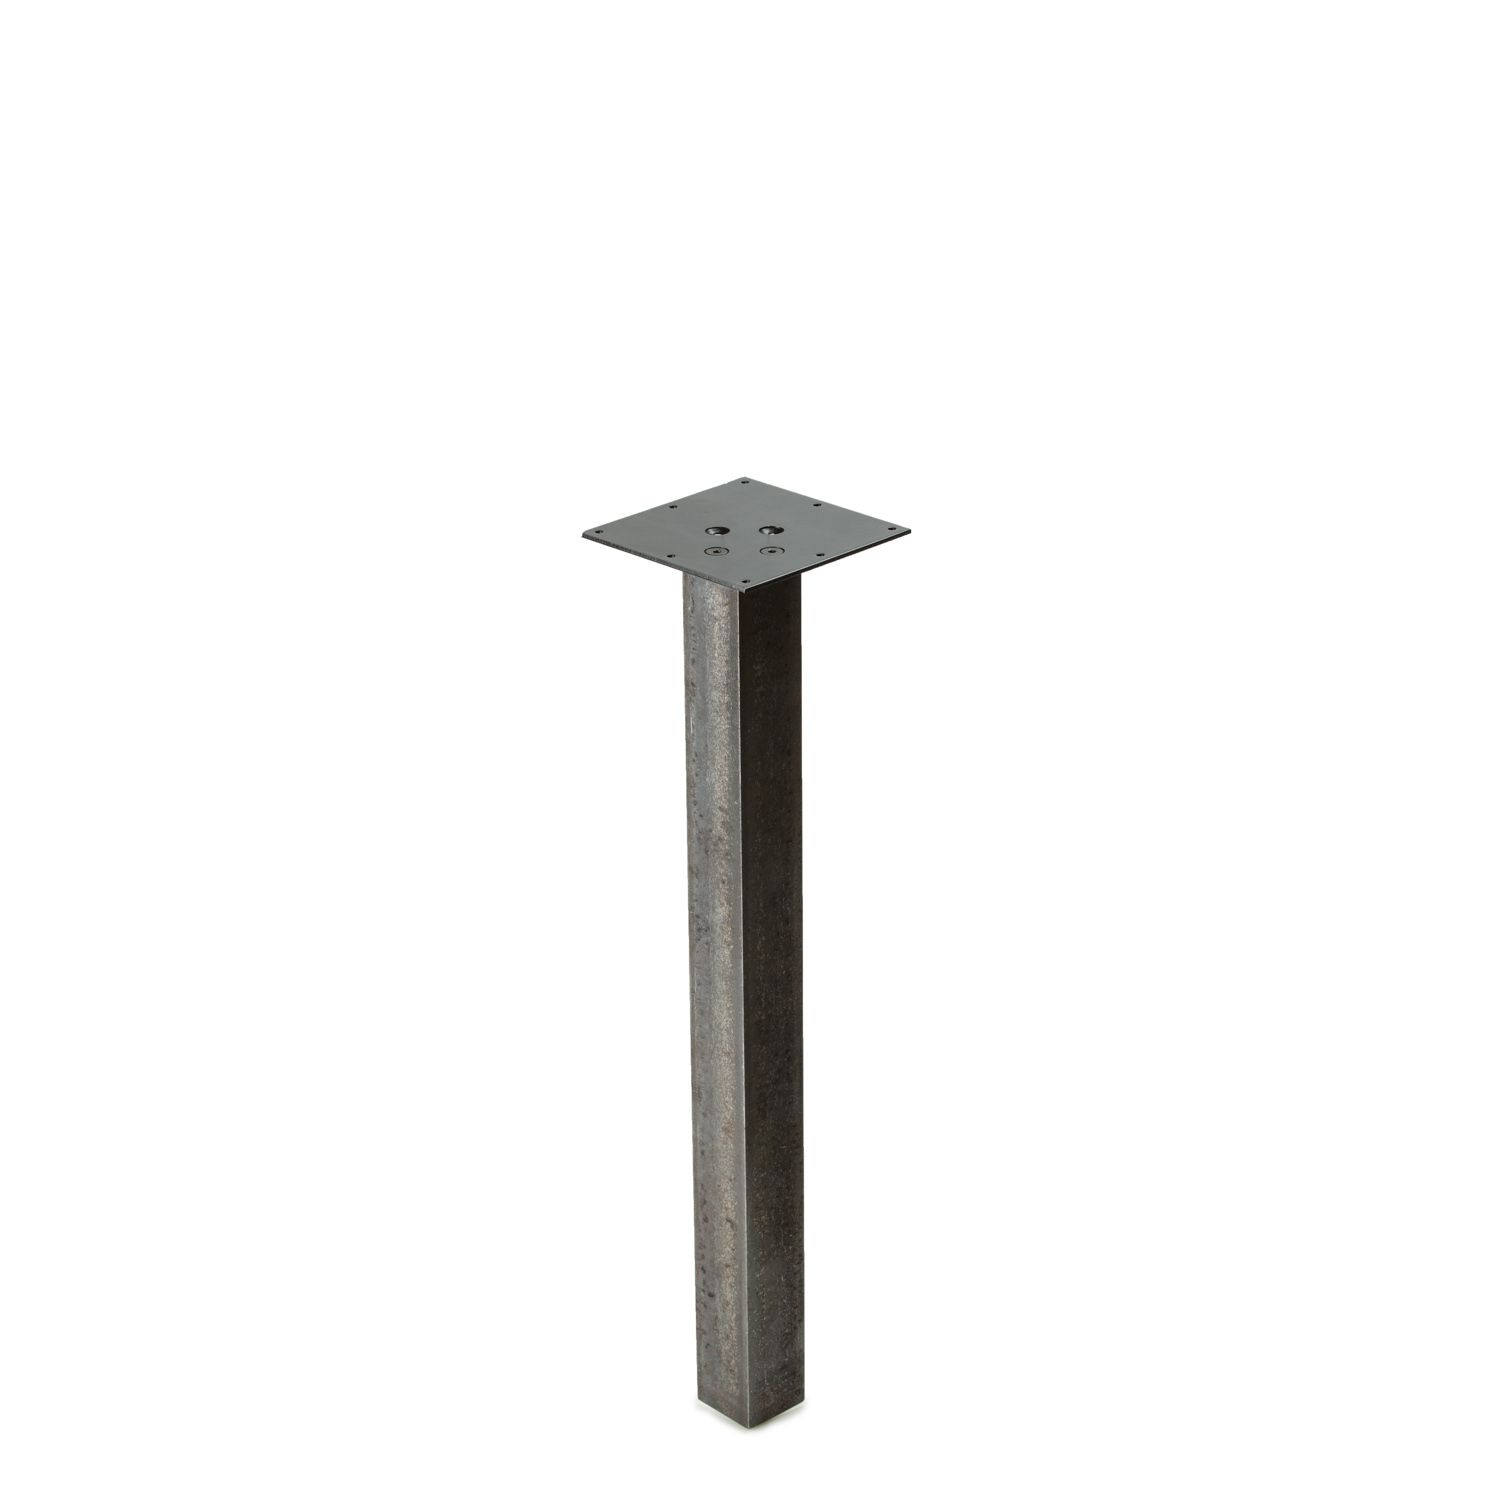 AI 2 Angled Steel Table Leg